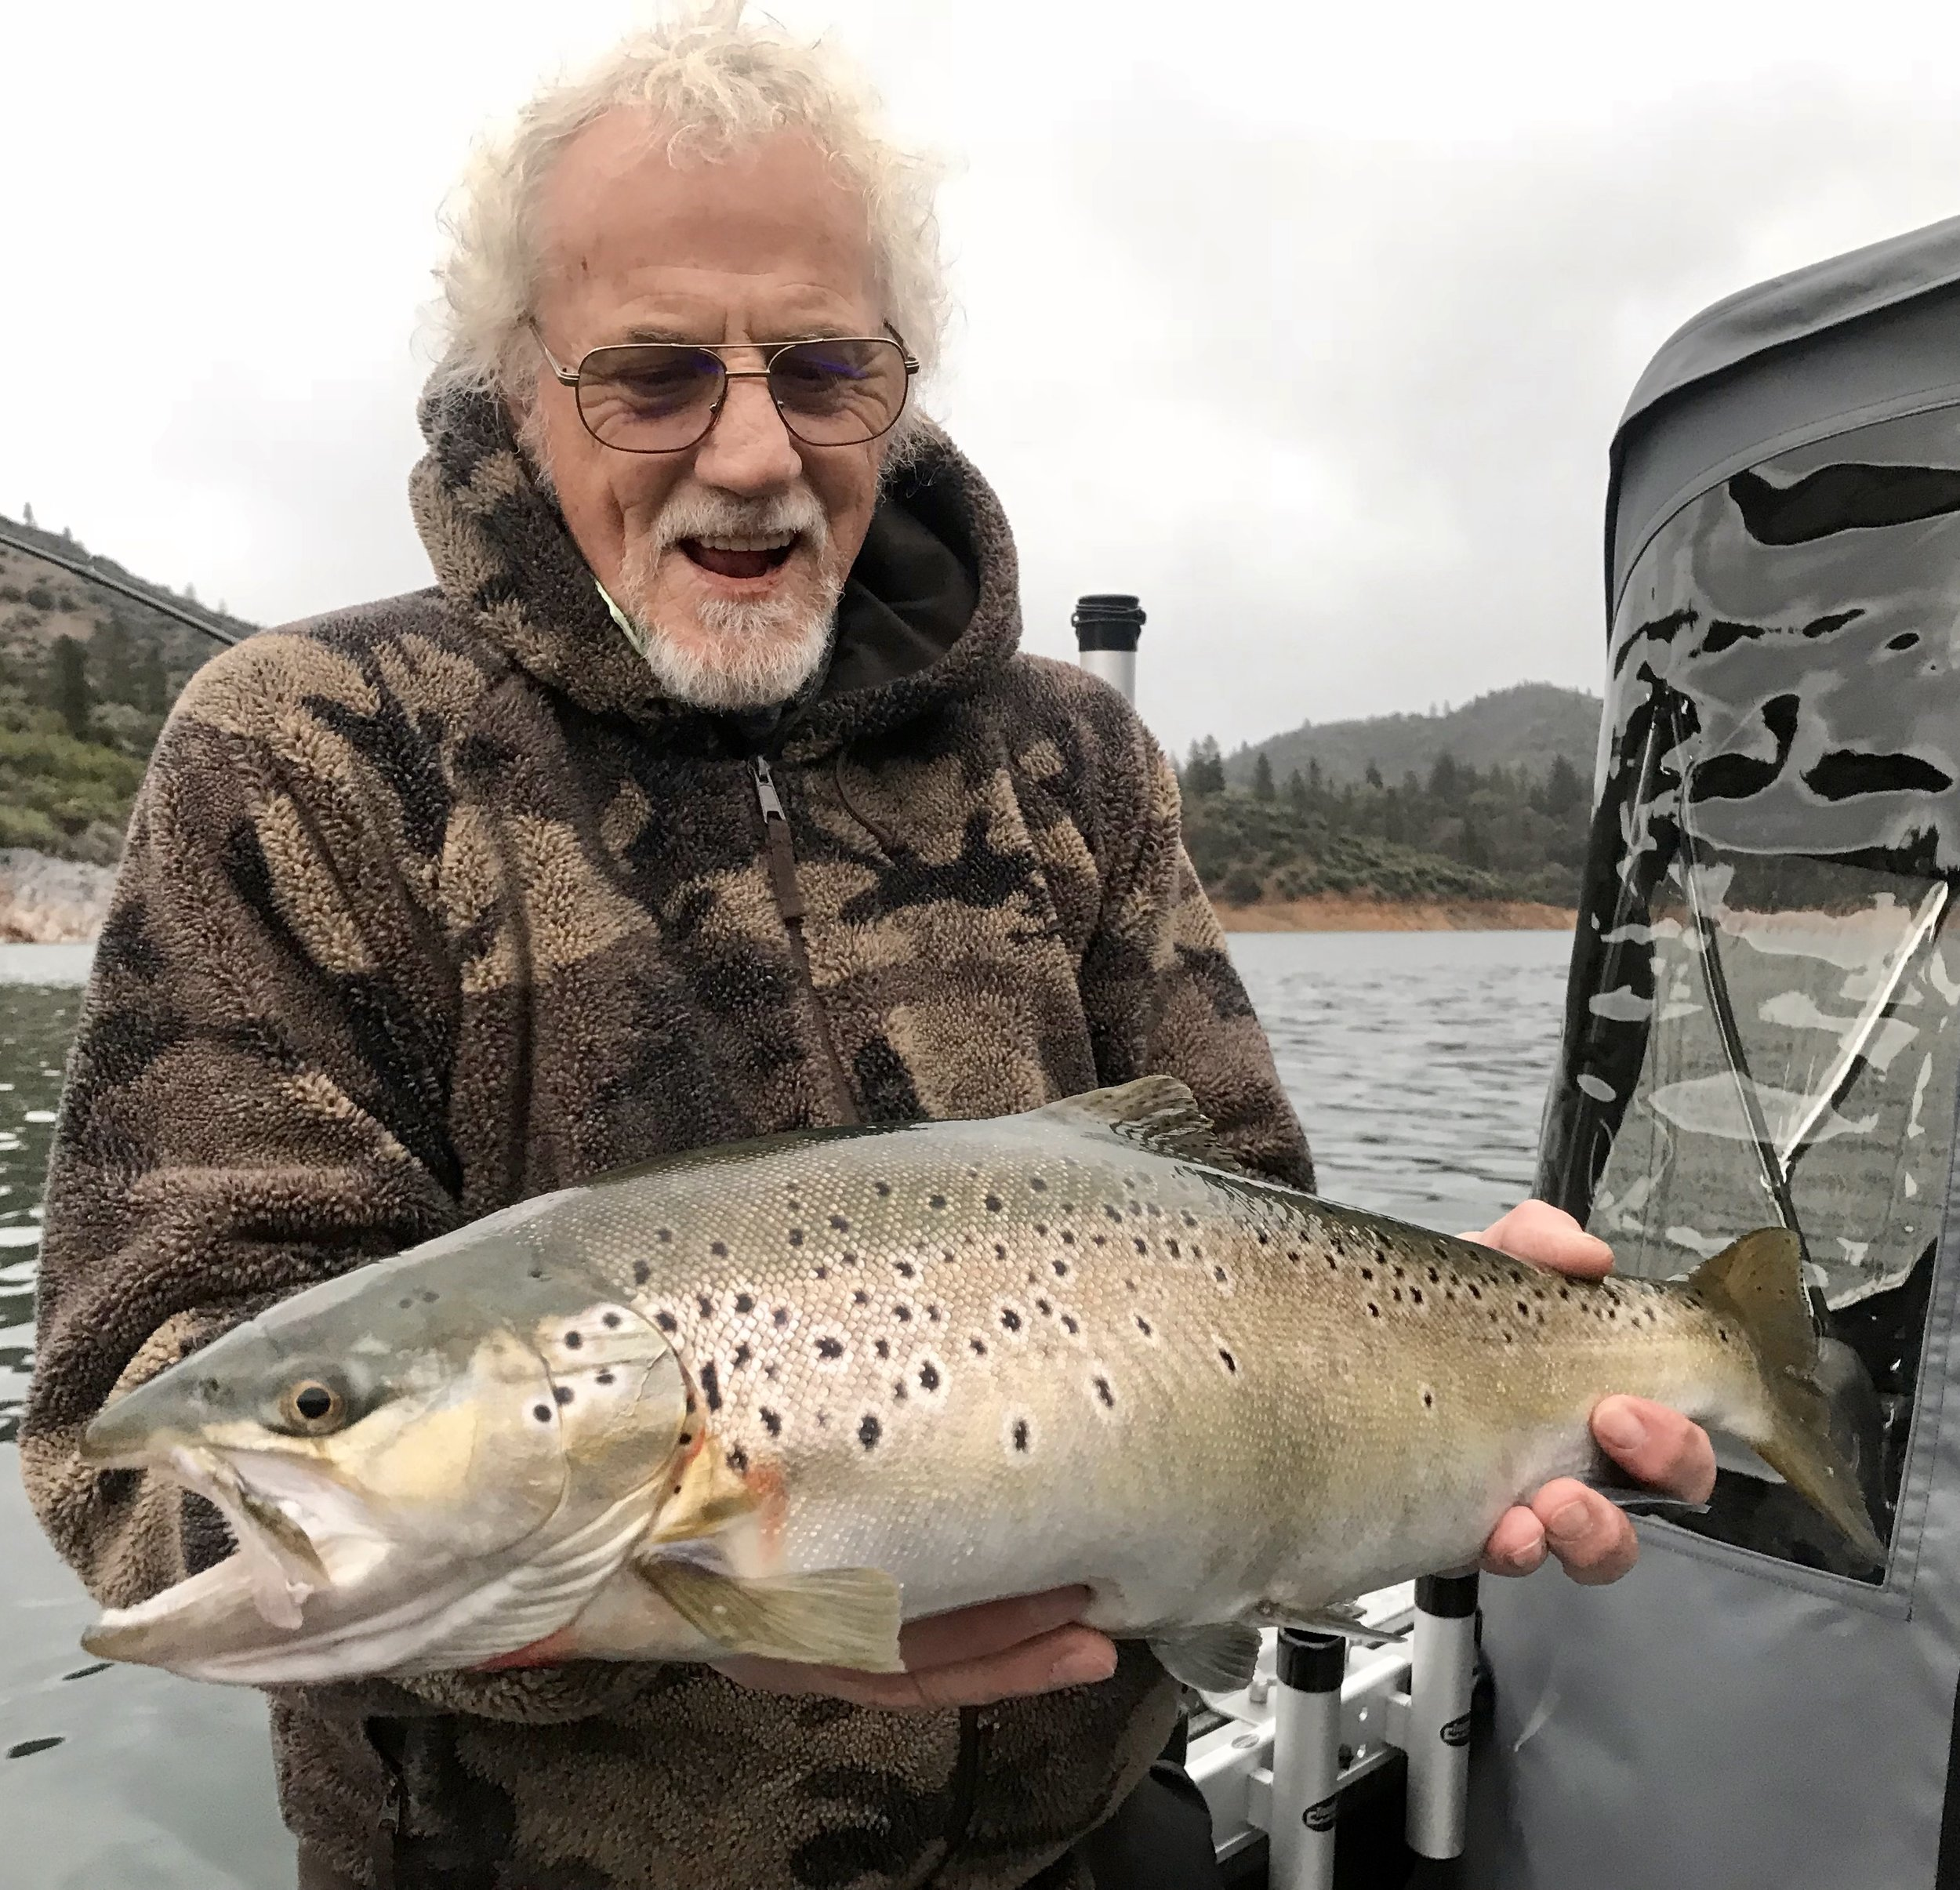 Shasta Lake has an abundance of quality browns in the 7-9 lb range like the one pictured.